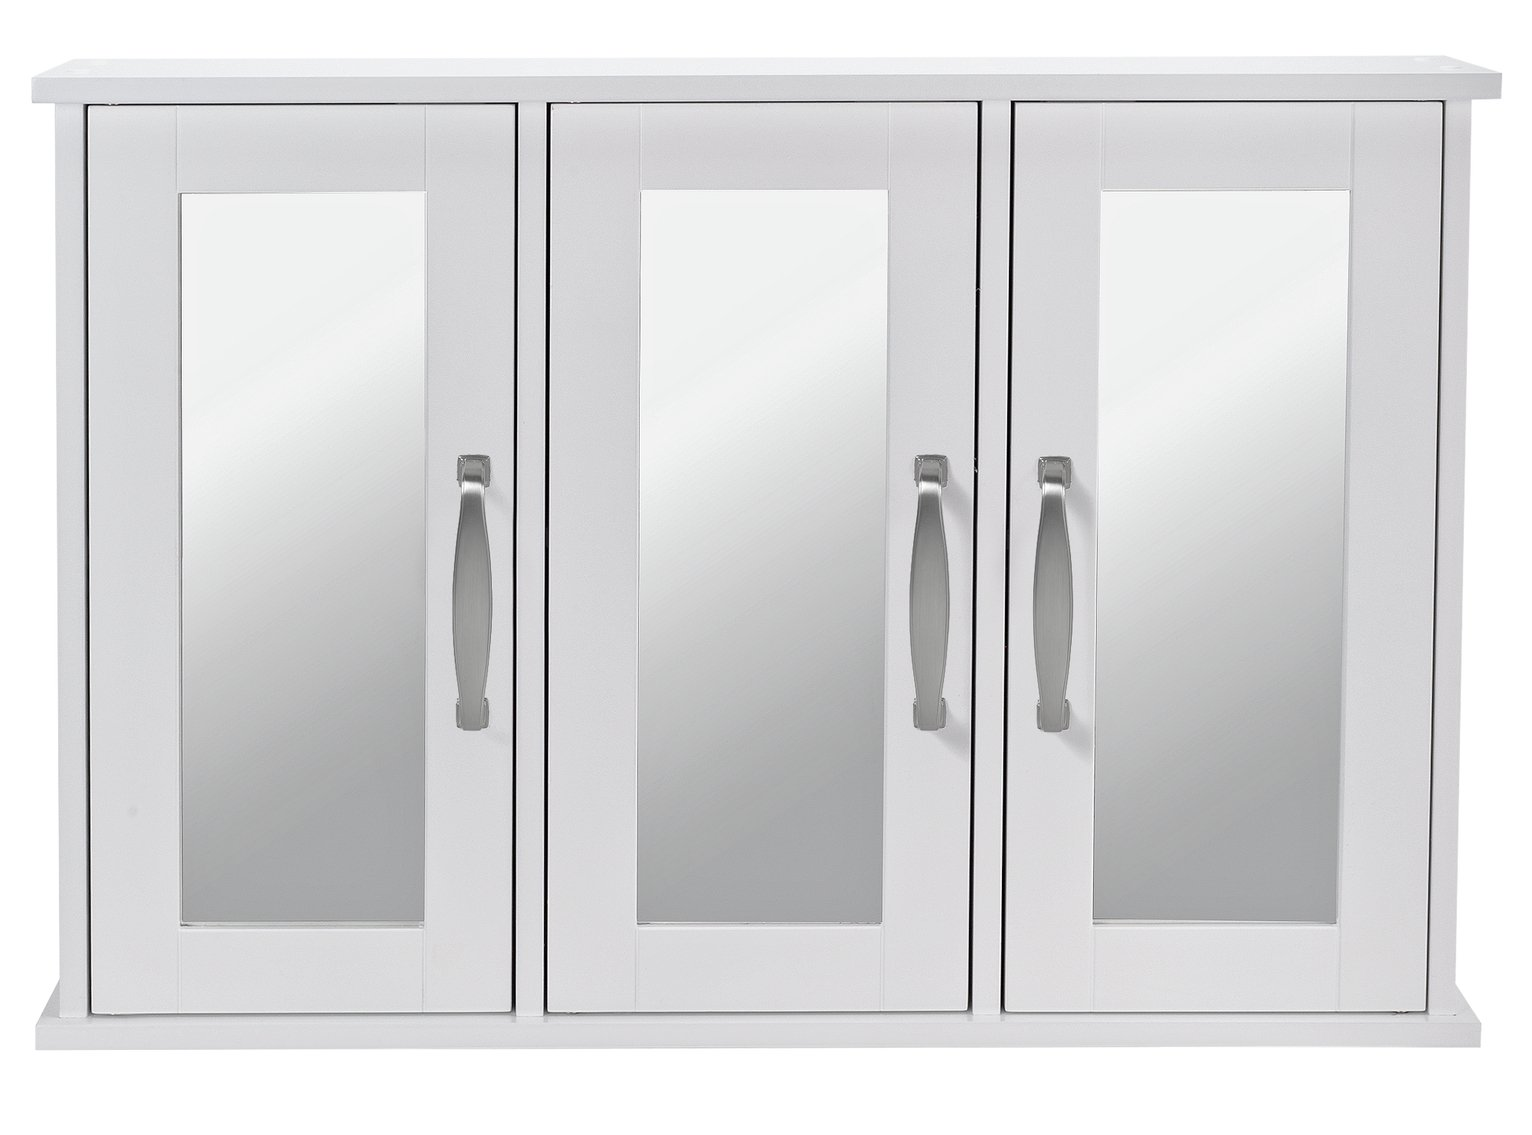 Argos Home Tongue and Groove Triple Mirrored Cabinet - White